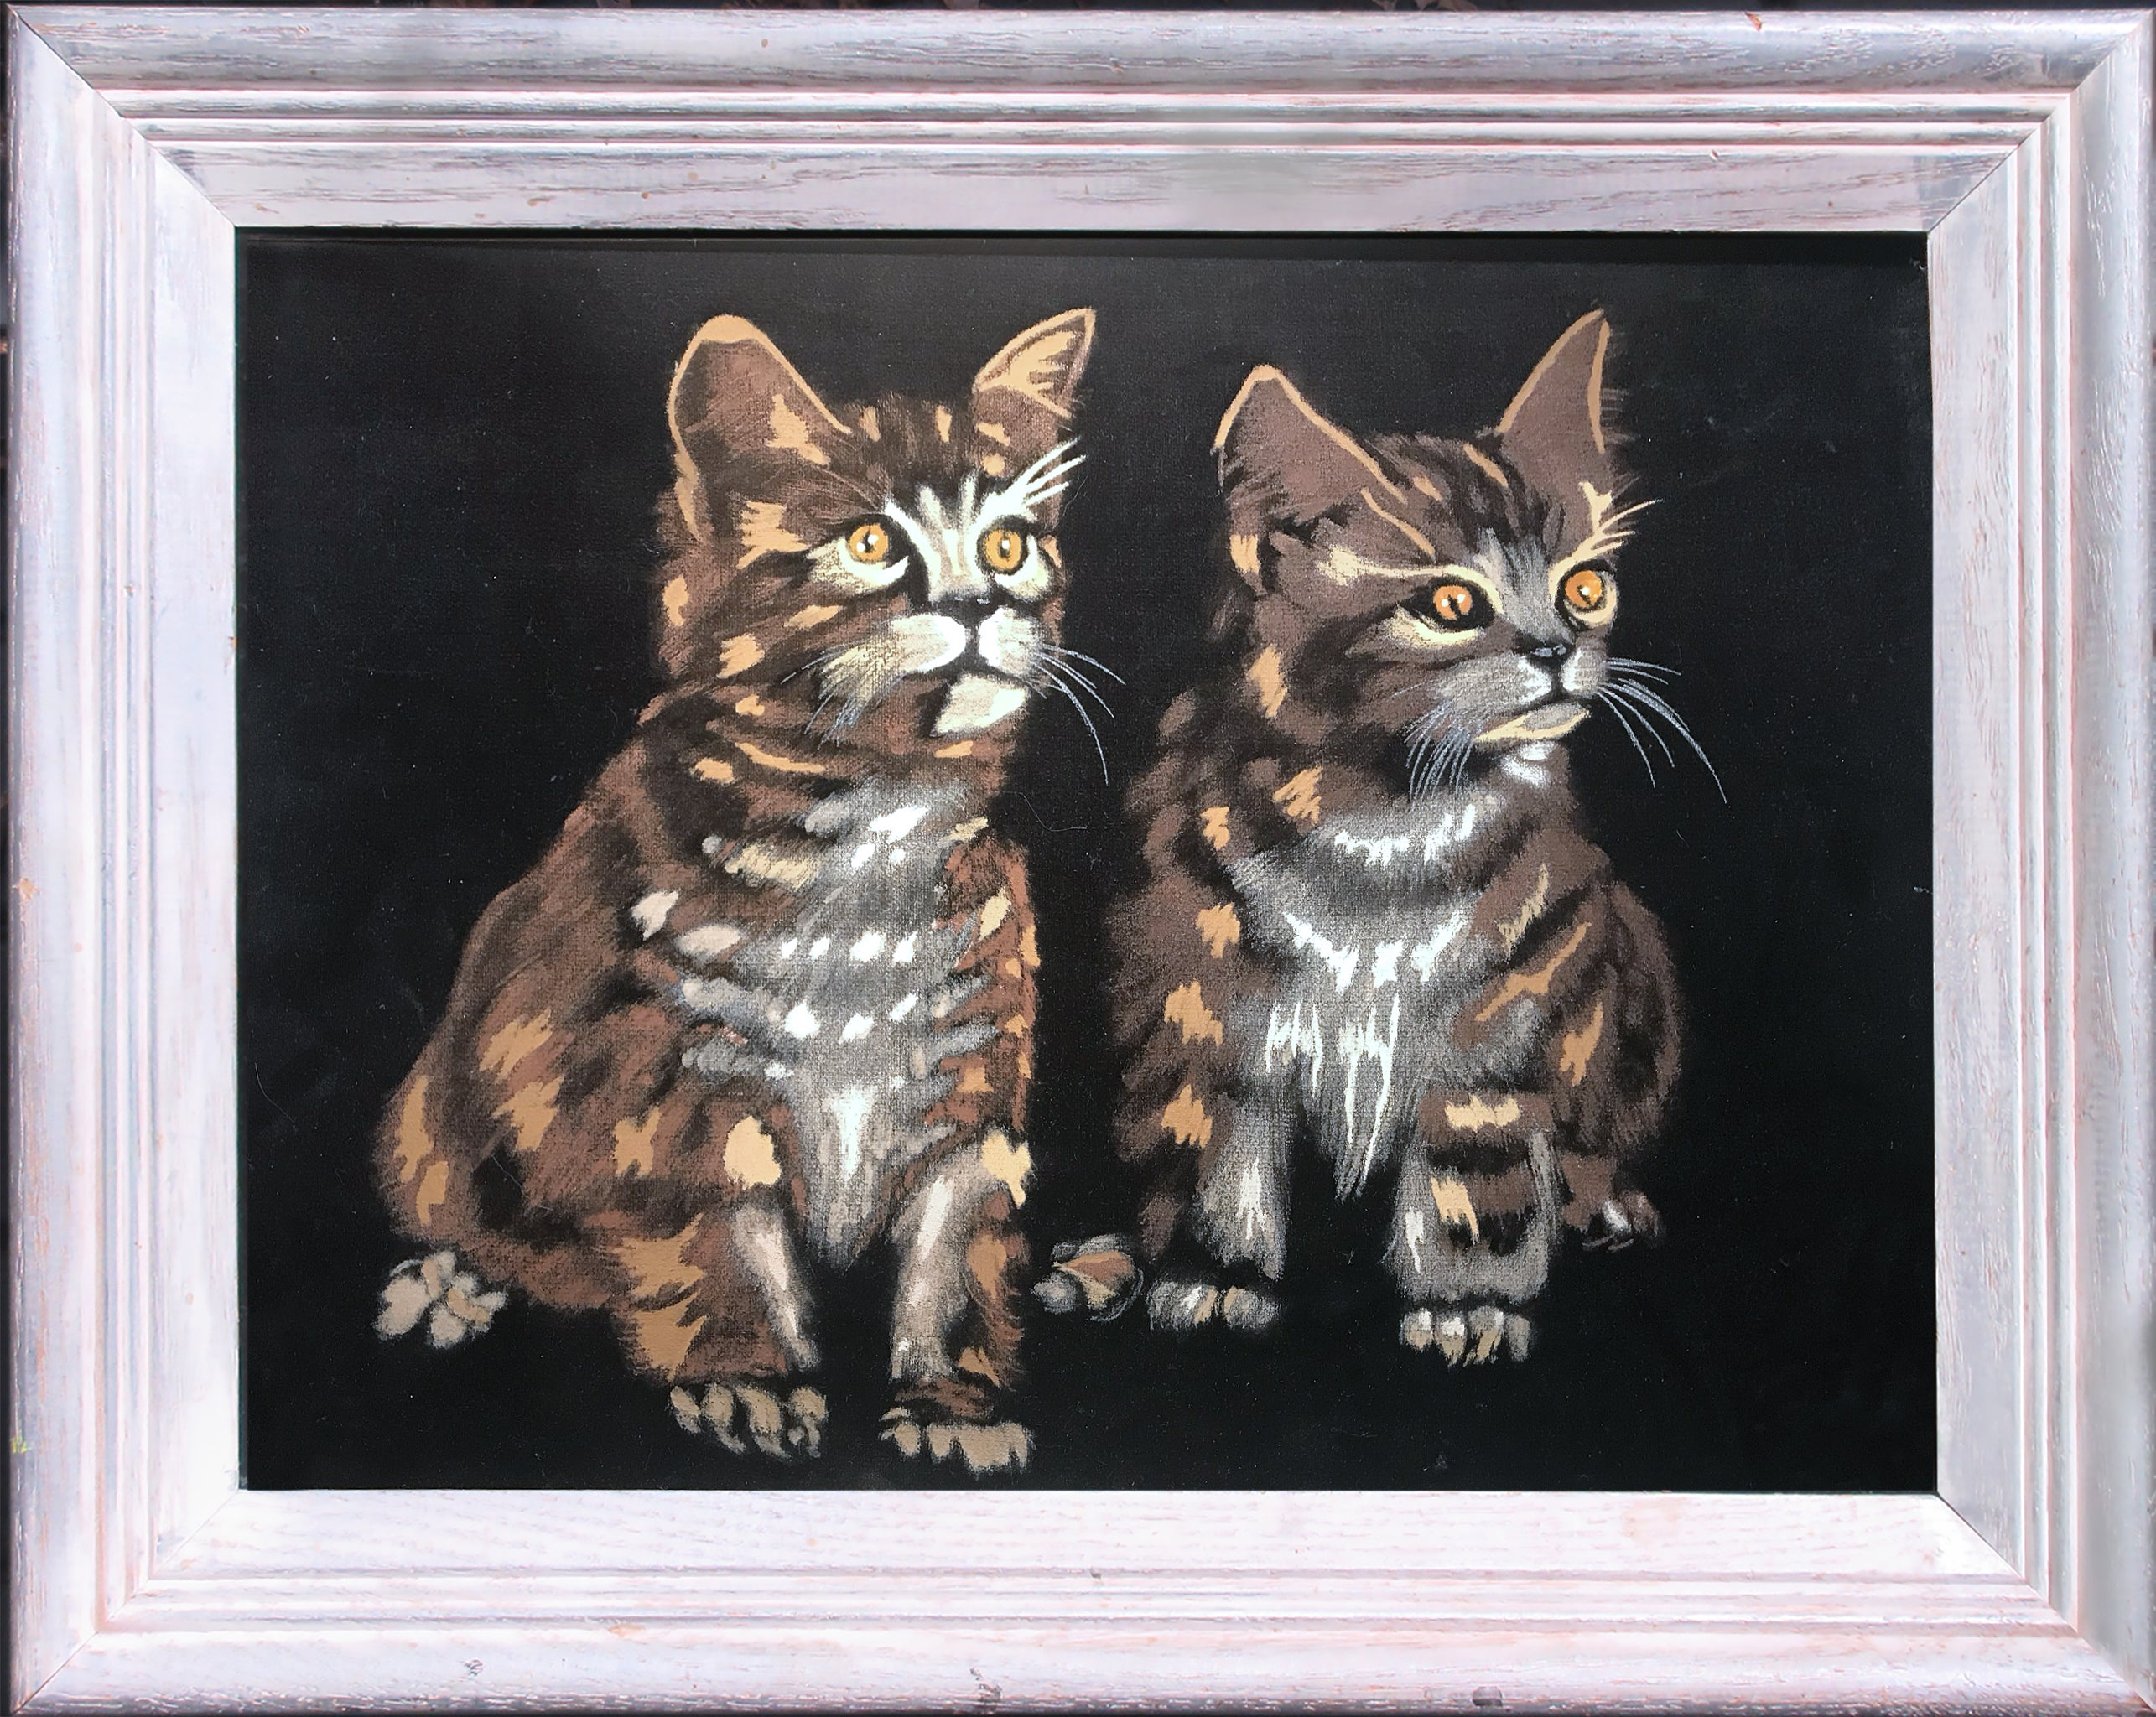 black velvet kitten painting before Cool Cat and Kitten redirected painting by Ange Beever